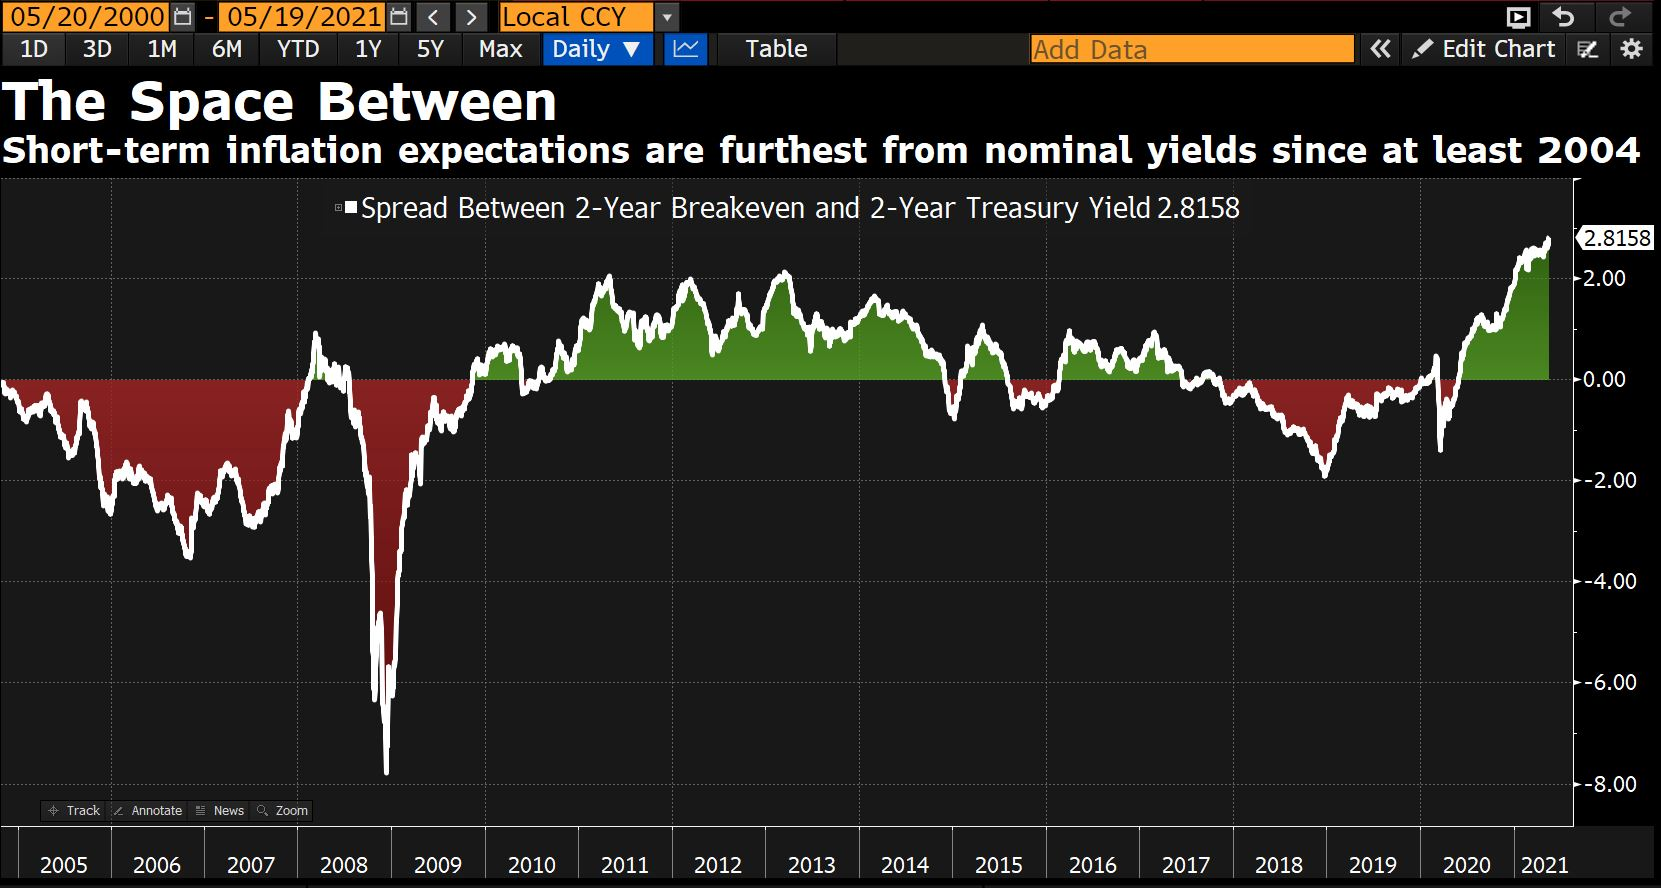 Inflation expectations: Spread between breakevens and yields blows out to highest since 2004